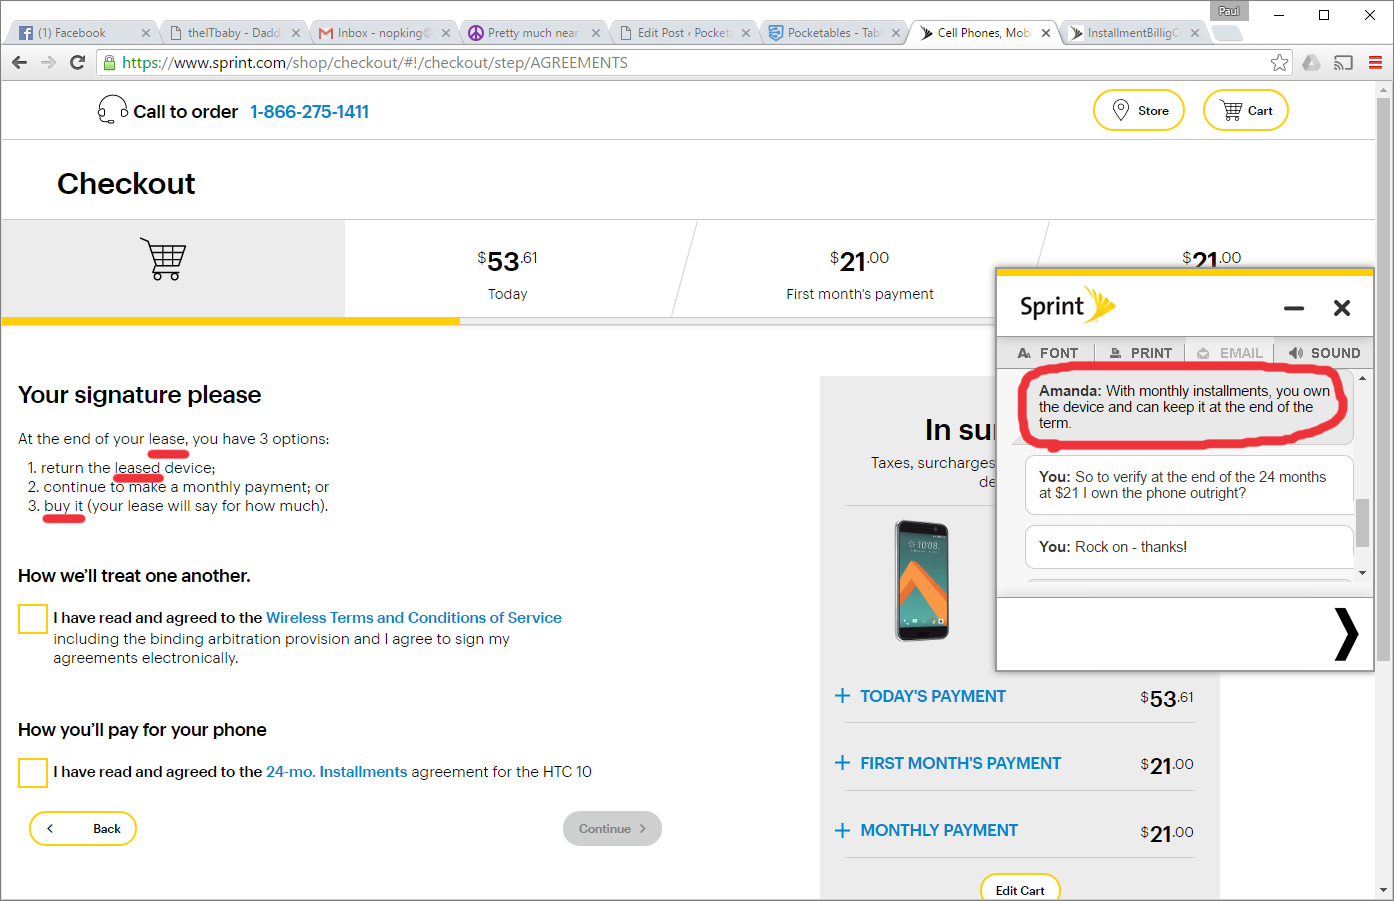 A laughable (attempted) upgrade with Sprint Pocketables